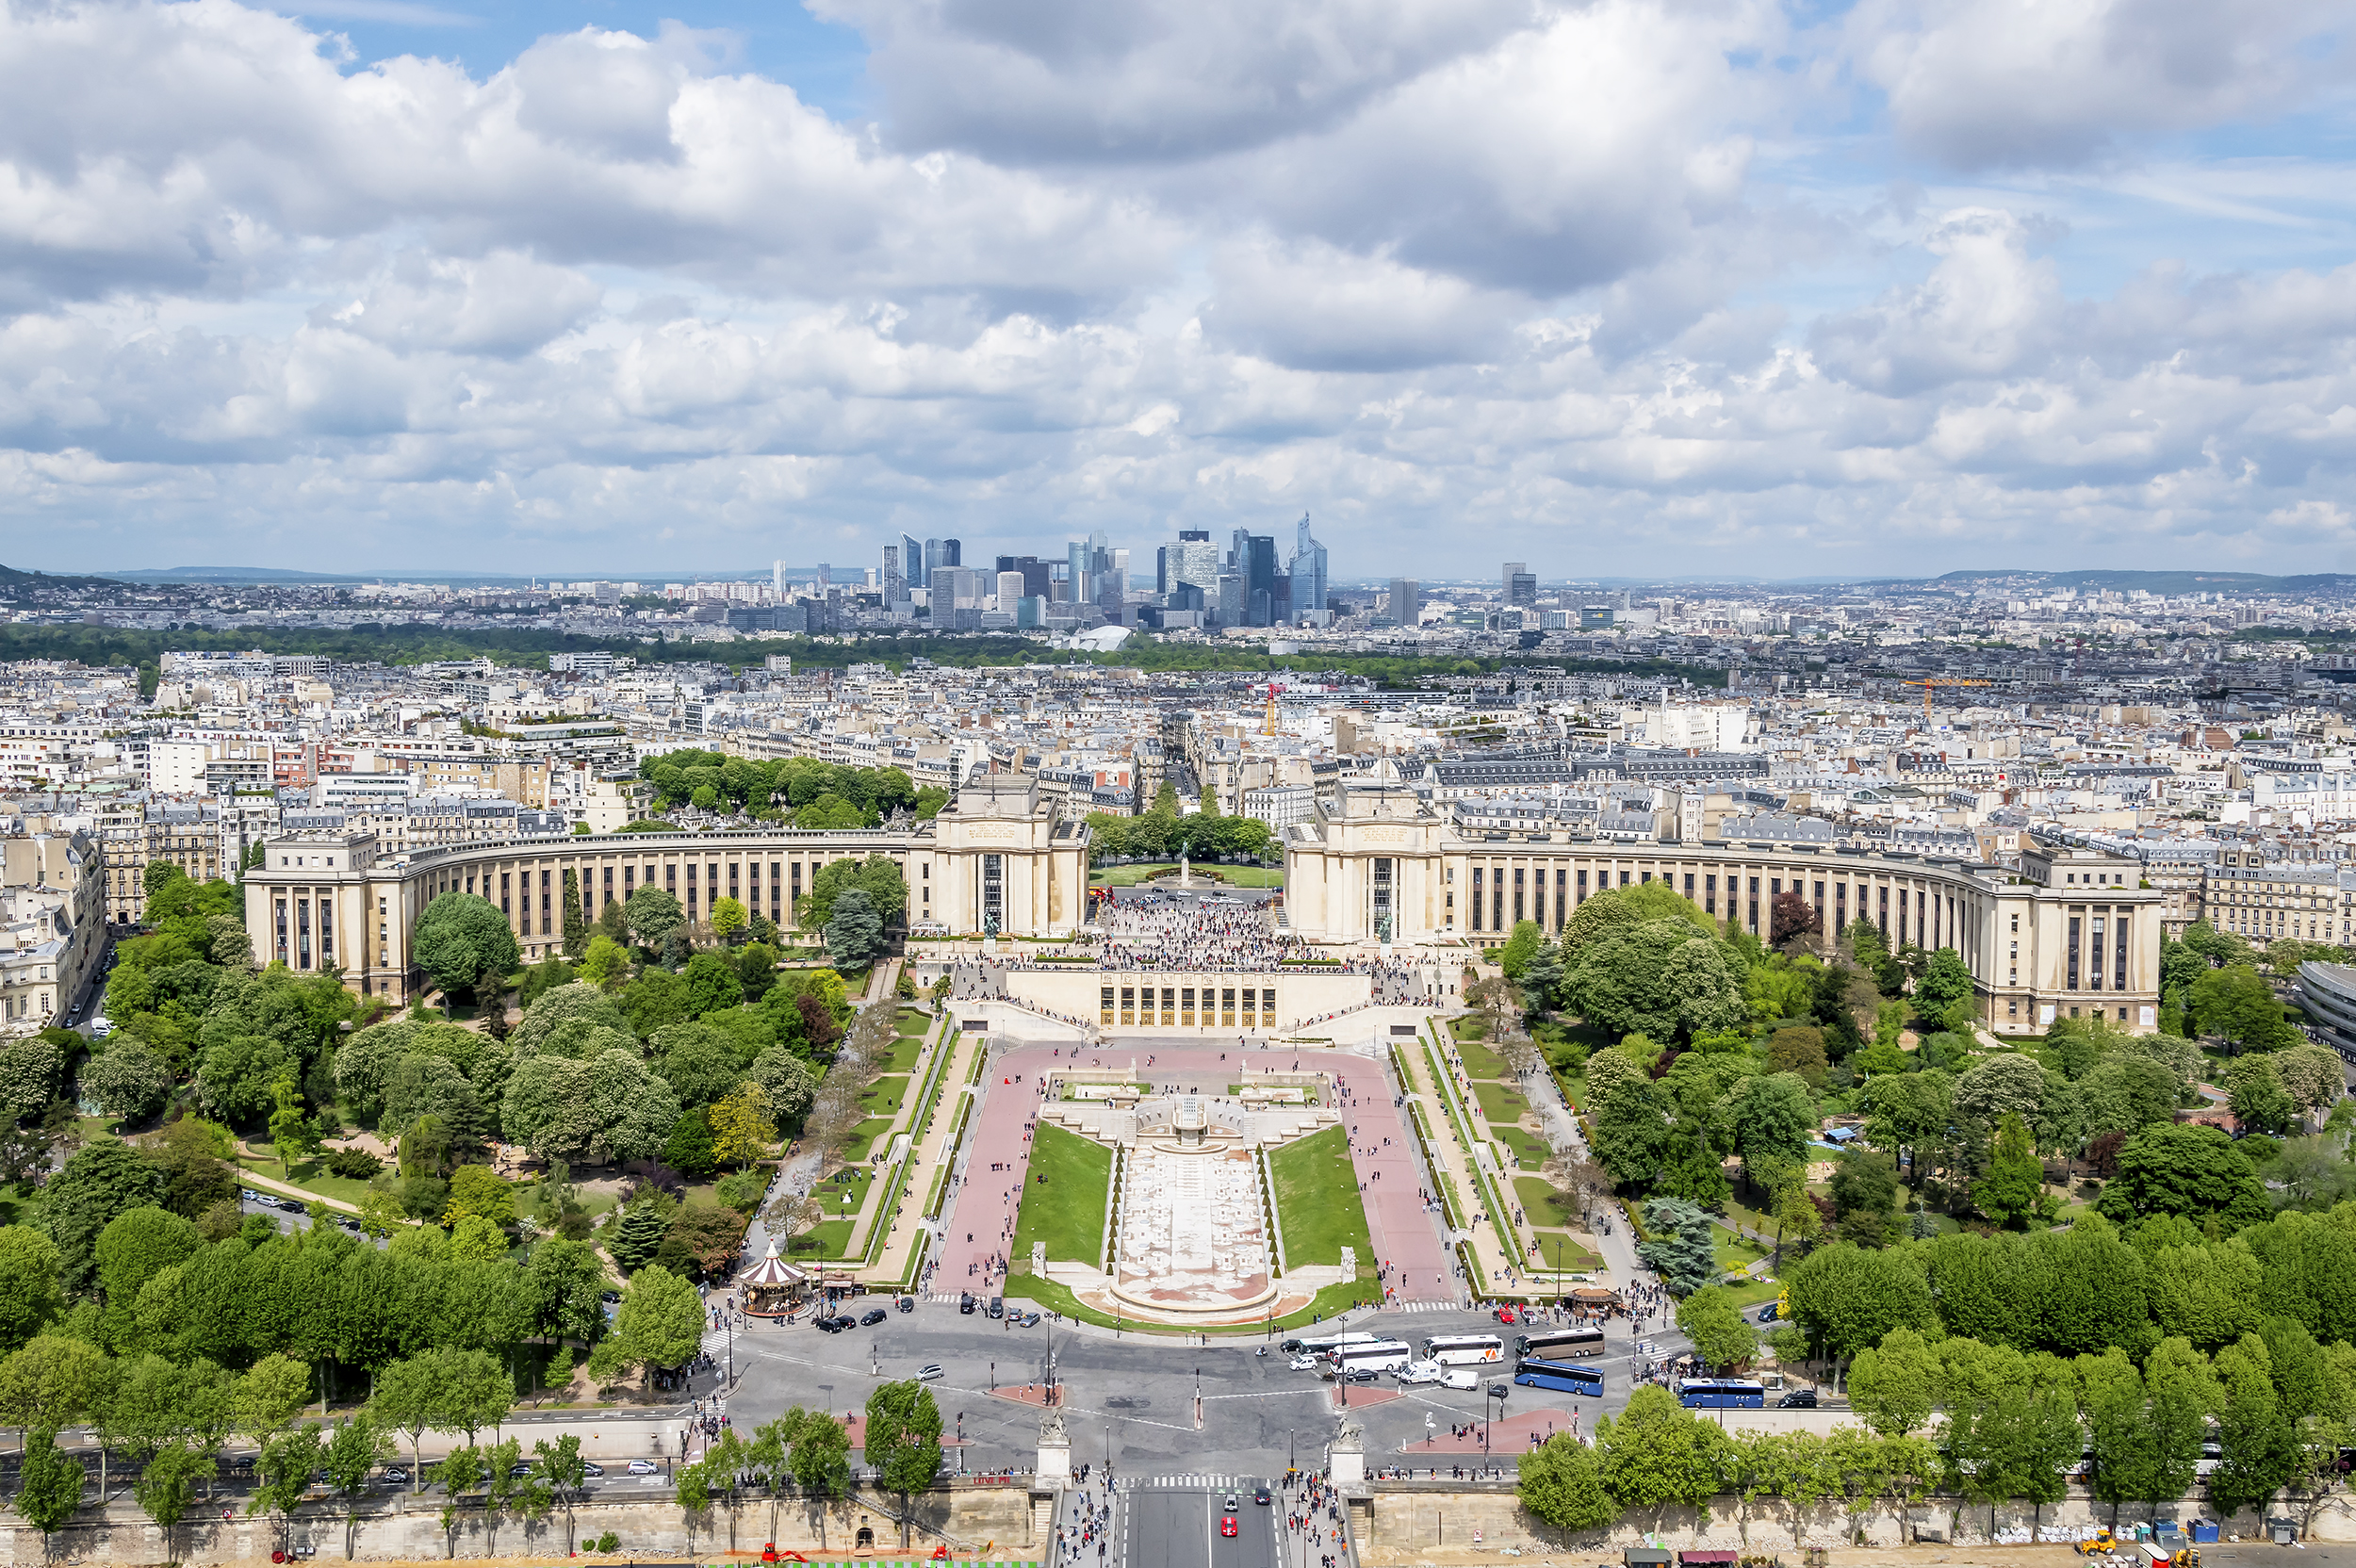 Place du Trocadero from the Eiffel Tower